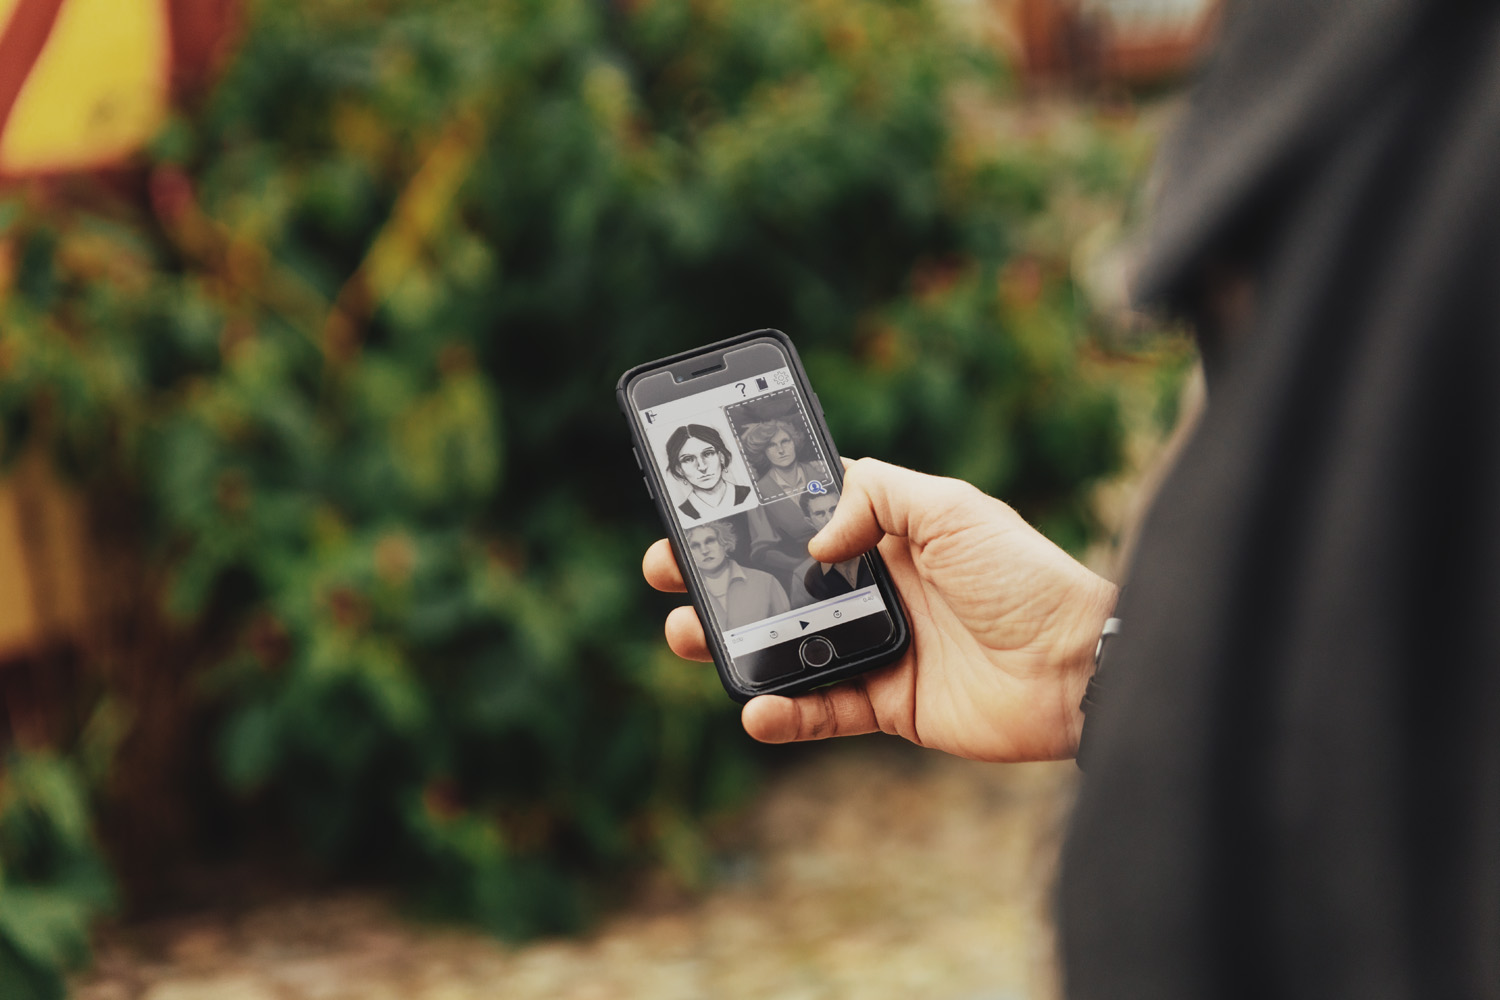 A man is holding a smartphone. On the screen is a portrait of a woman